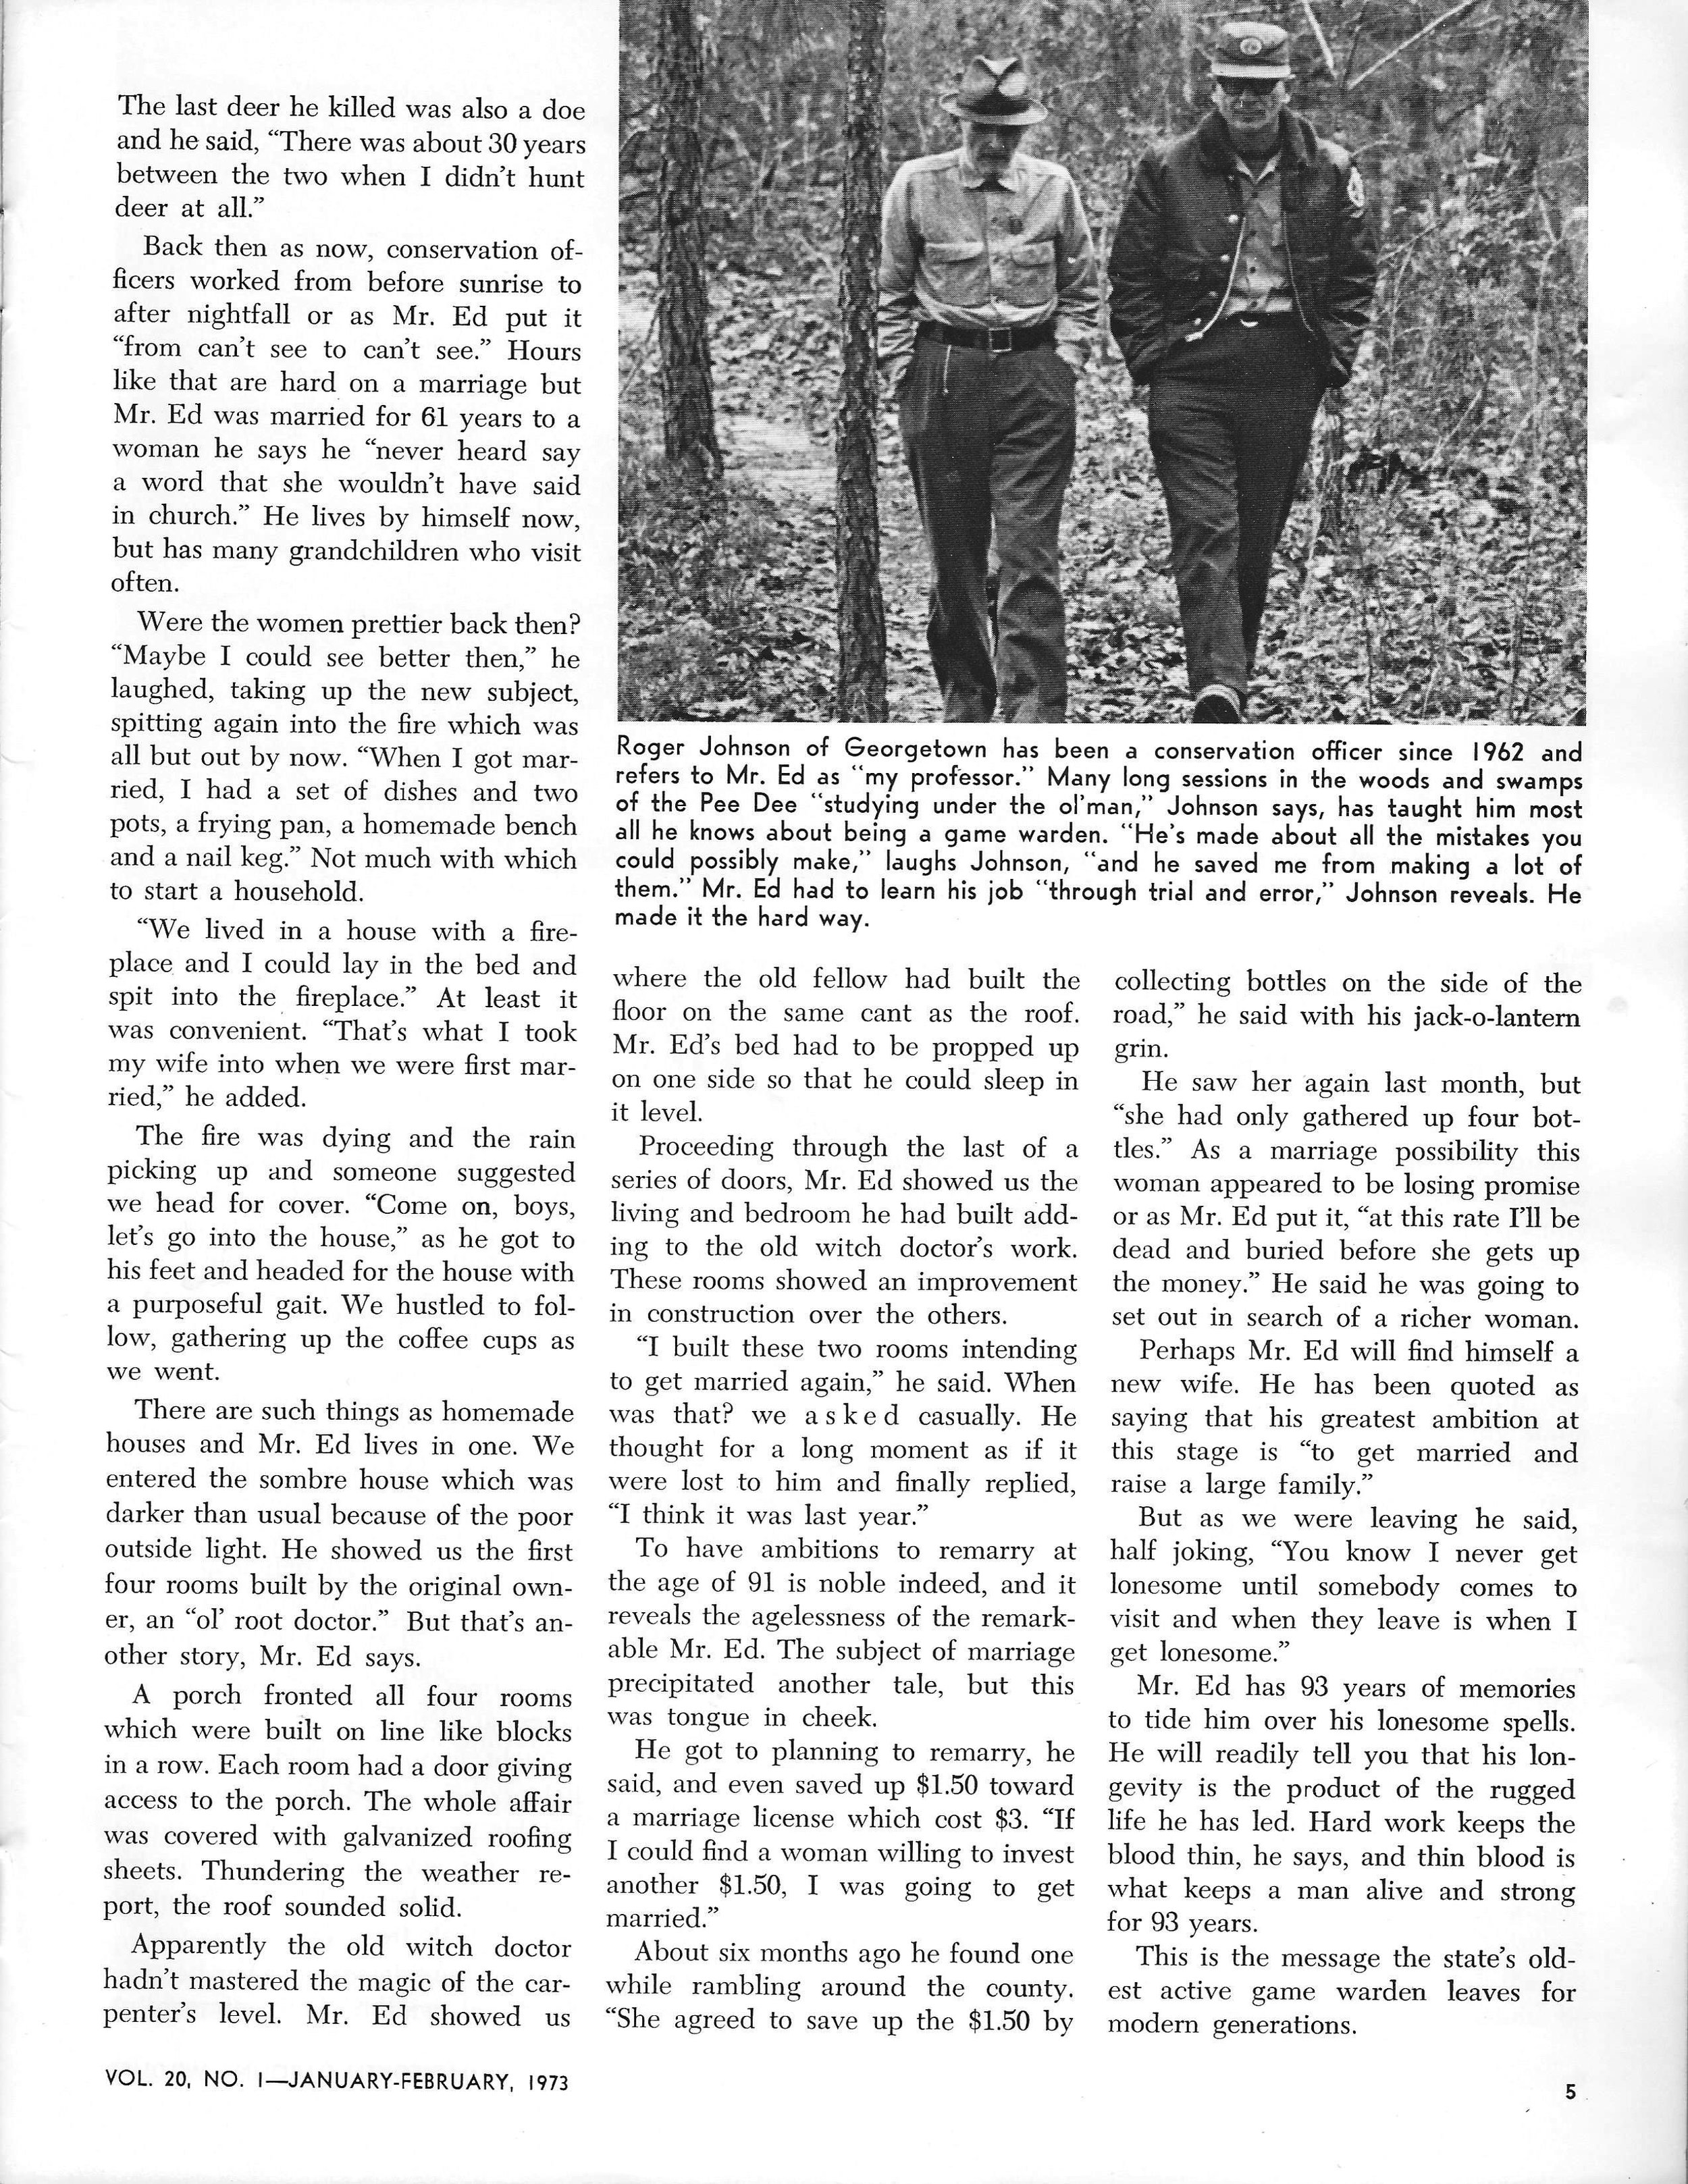 SCW magazine - January-February 1973 issue, page 4